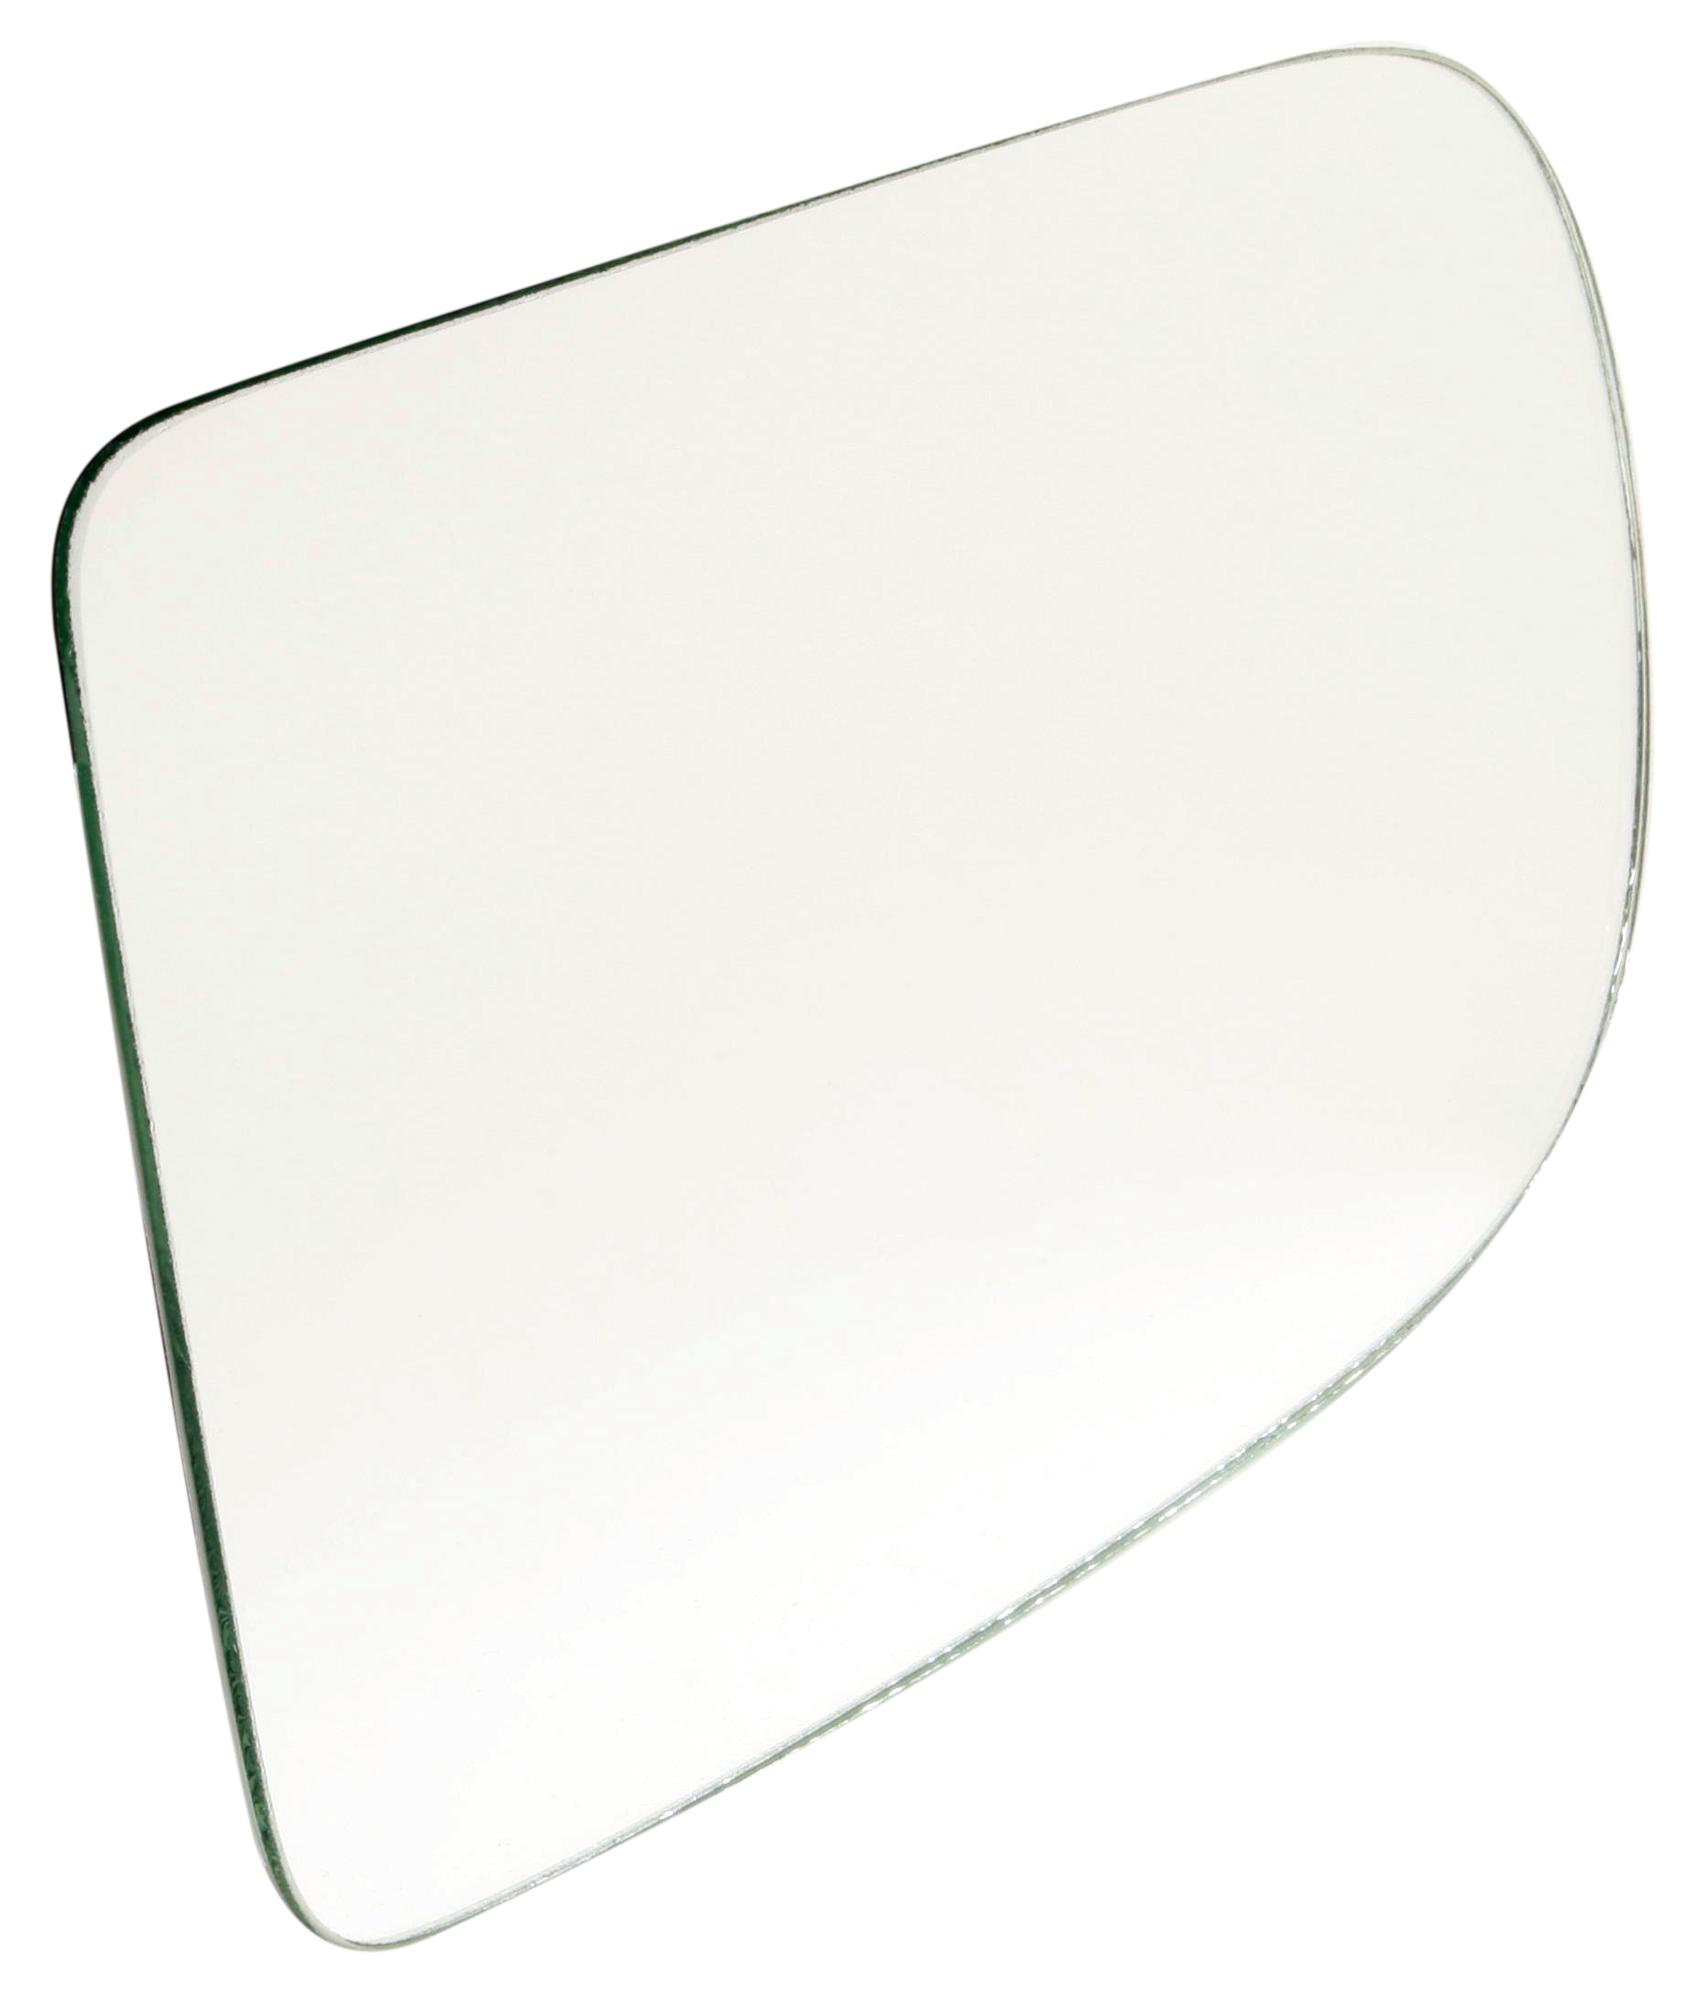 hight resolution of details about halfords sr30 standard replacement mirror glass right side ford granada scorpio